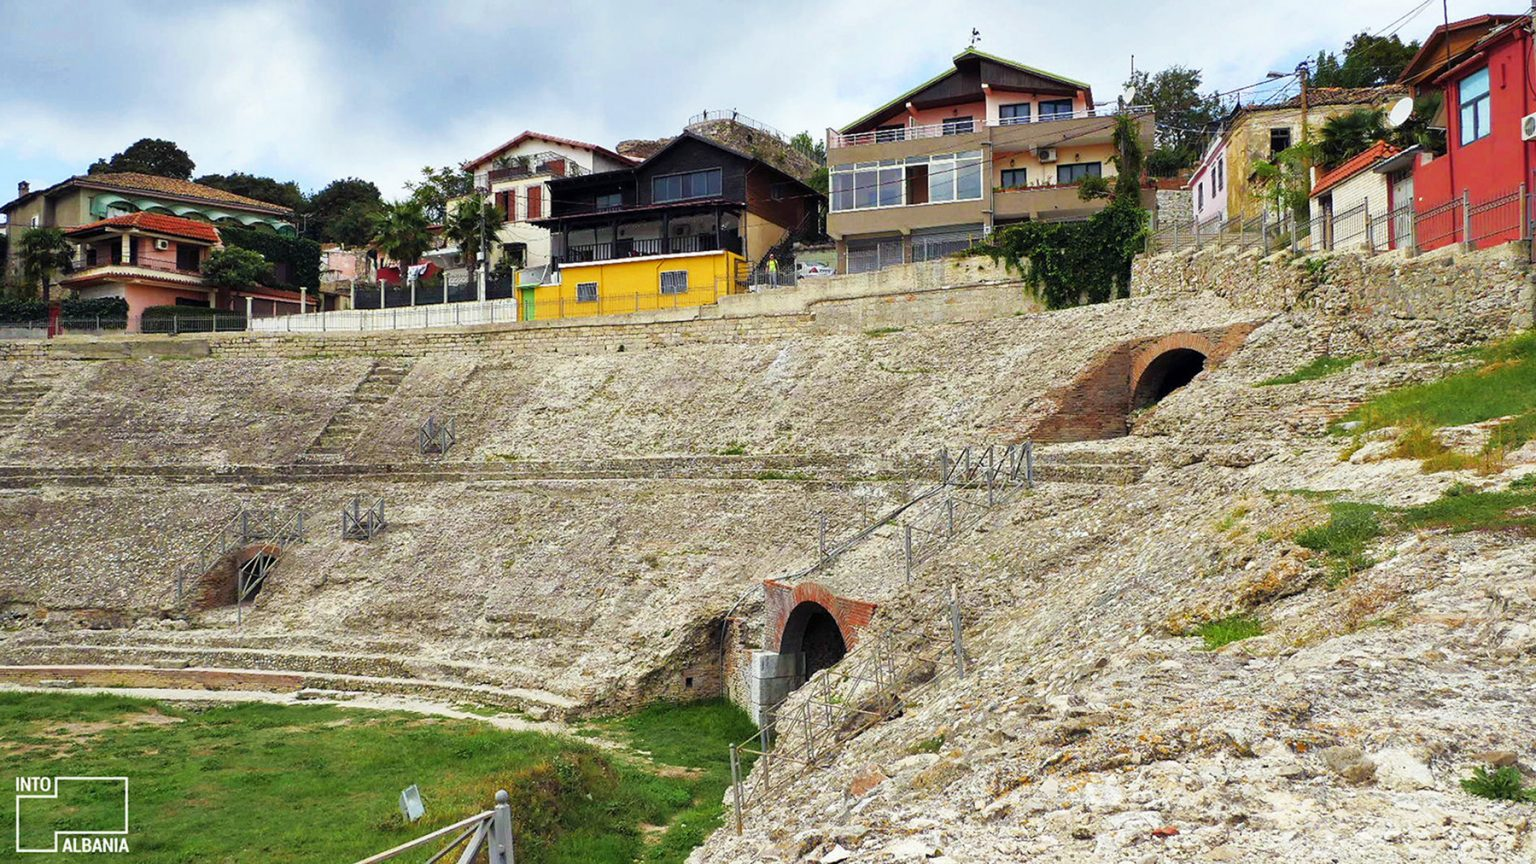 Amphitheater of Durrës, photo by IntoAlbania.